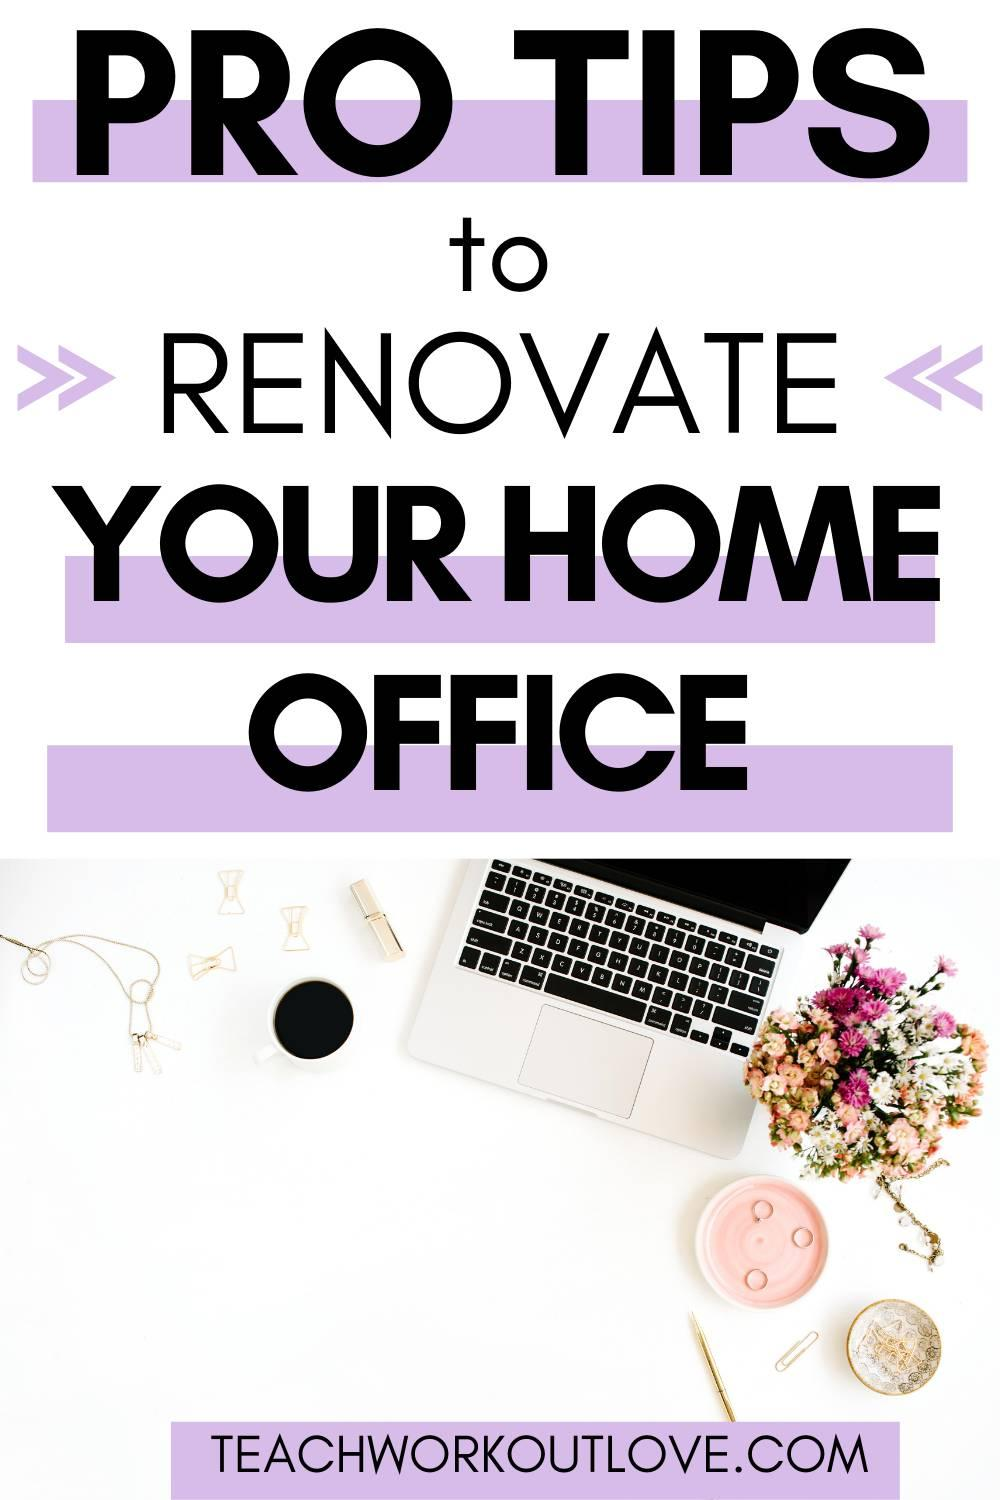 When you renovate your home office it can seem like an unnecessary and risky investment, but spending a lot of time in there, it's worth it!